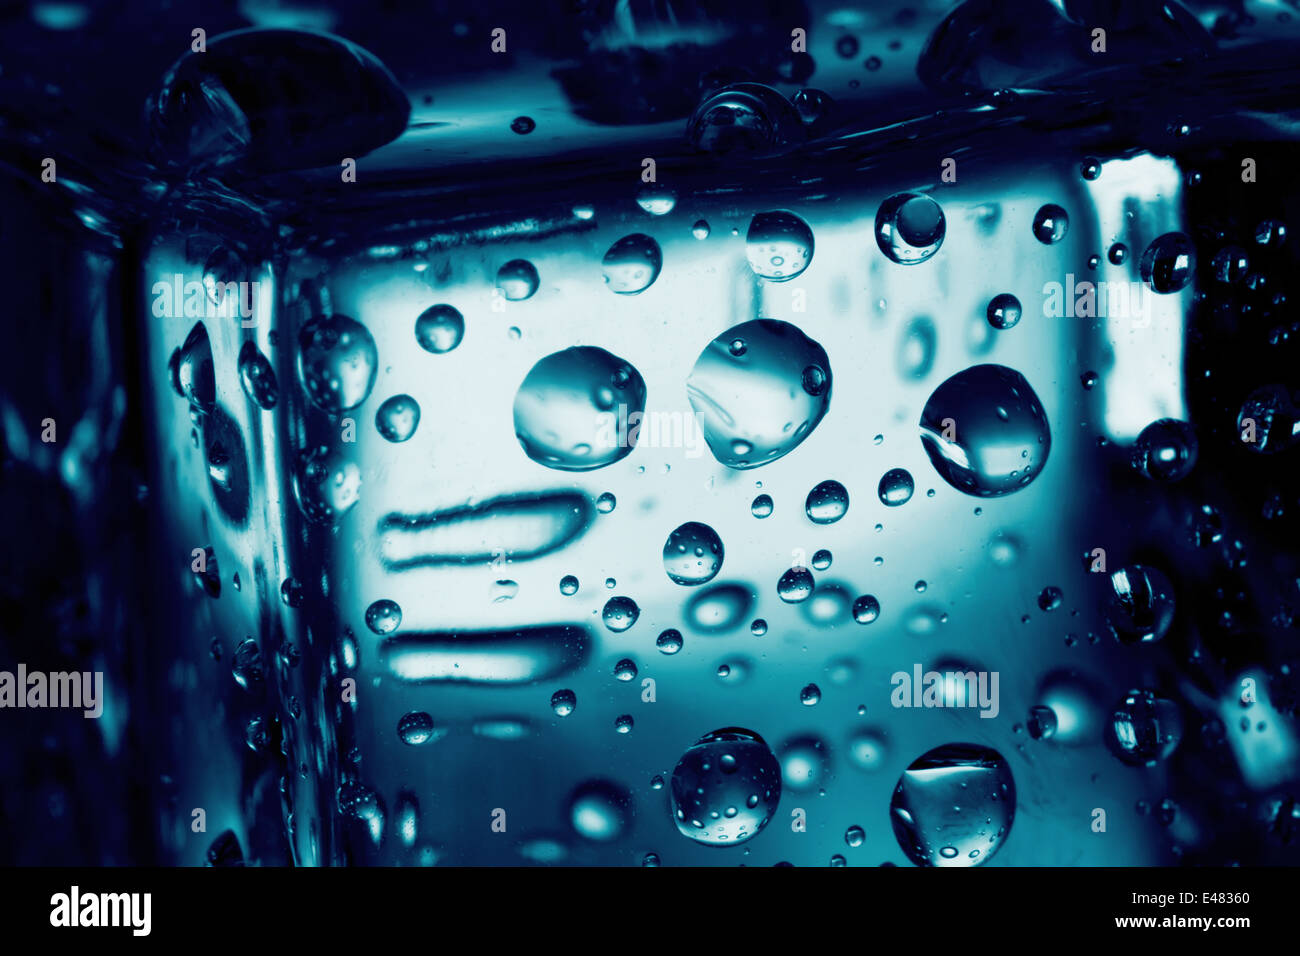 Background of ice cube with drops tinted blue - Stock Image